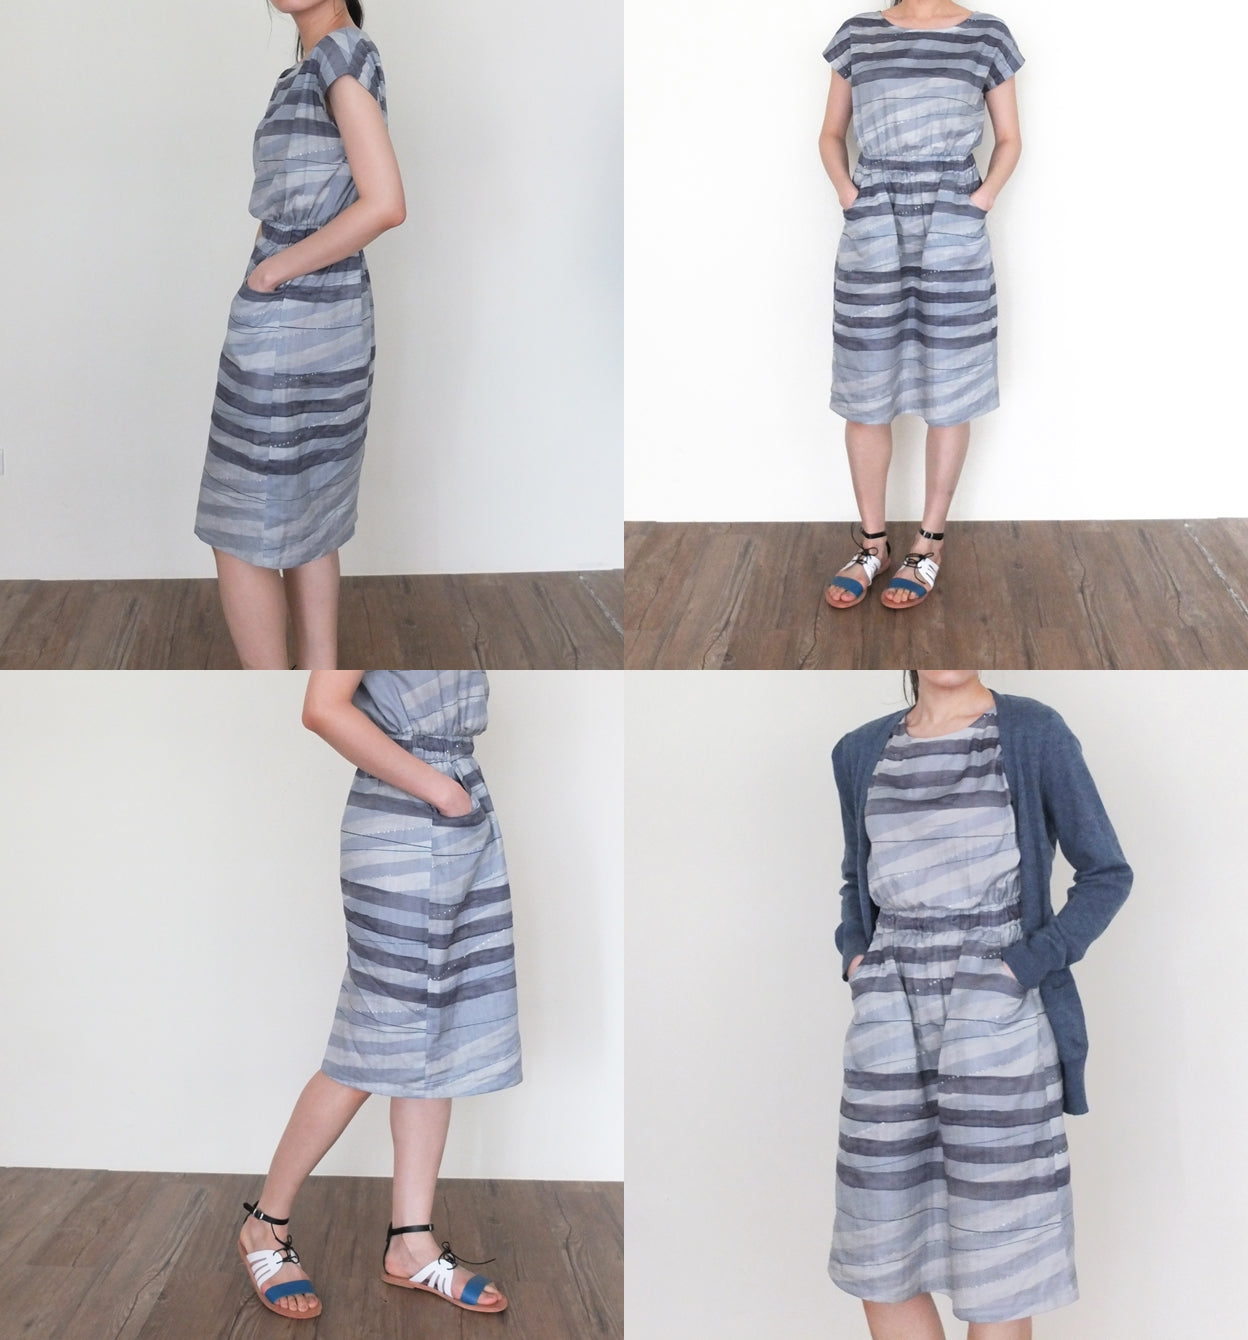 nani iro freeway dress by metaformose